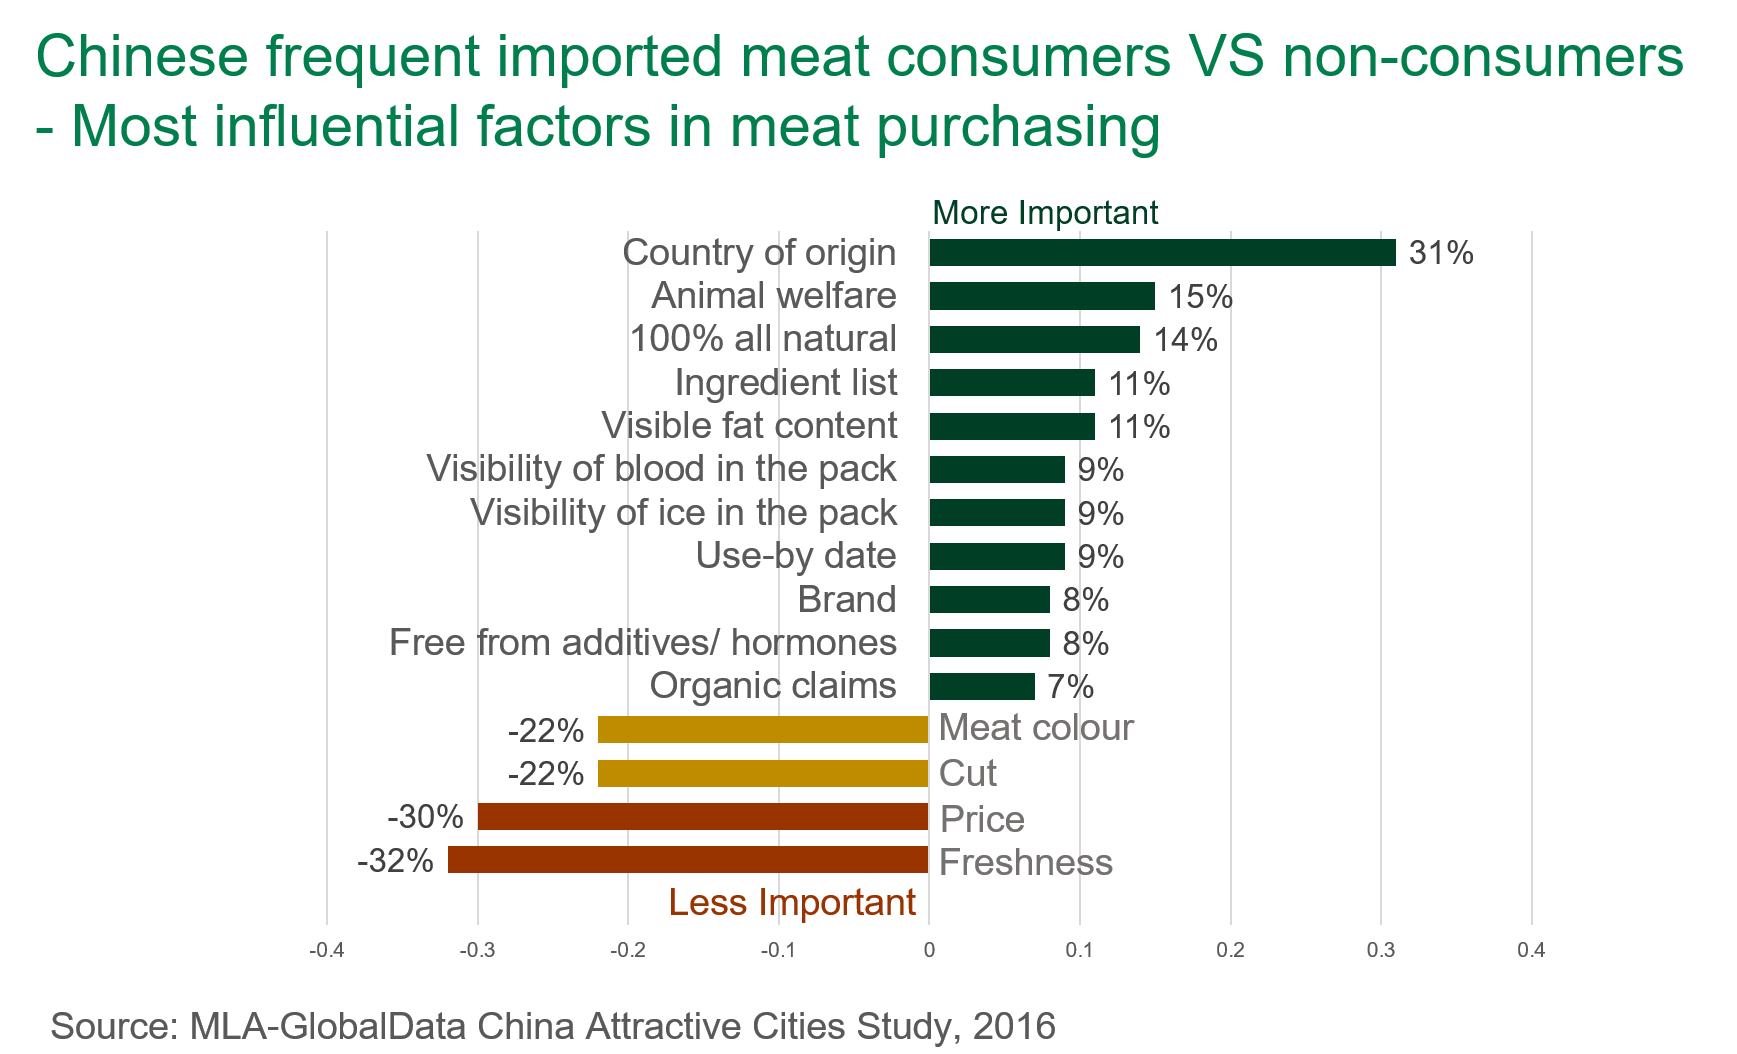 Chinese frequent imported meat consumers